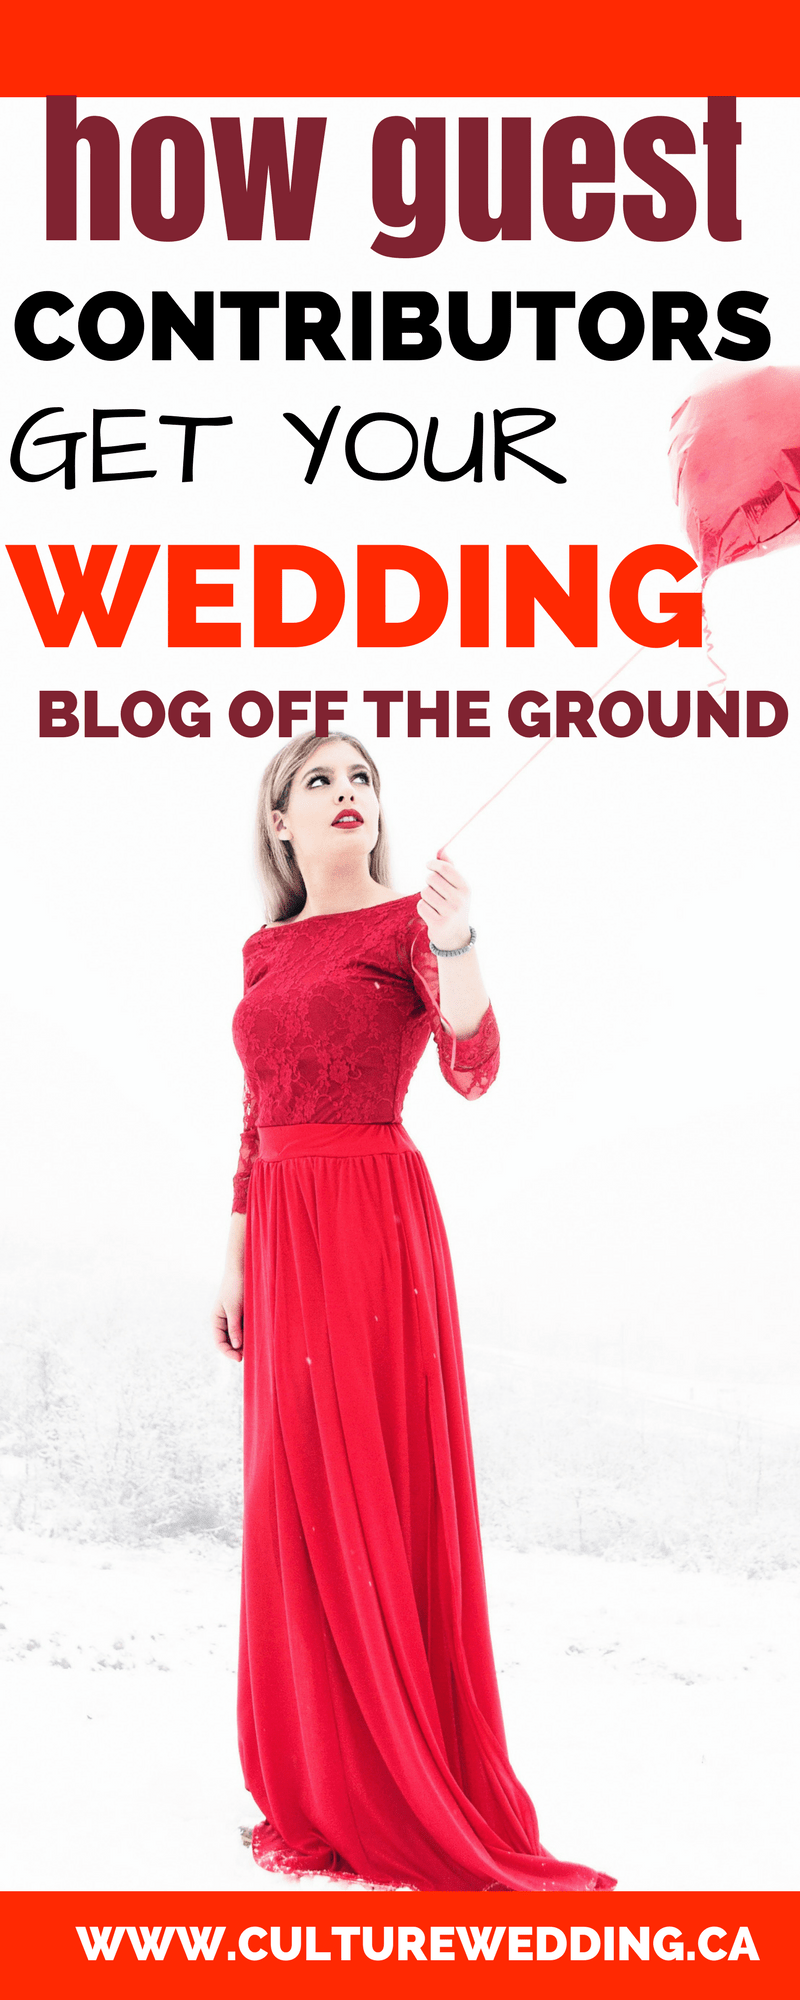 How guest contributors get your wedding blog off the ground